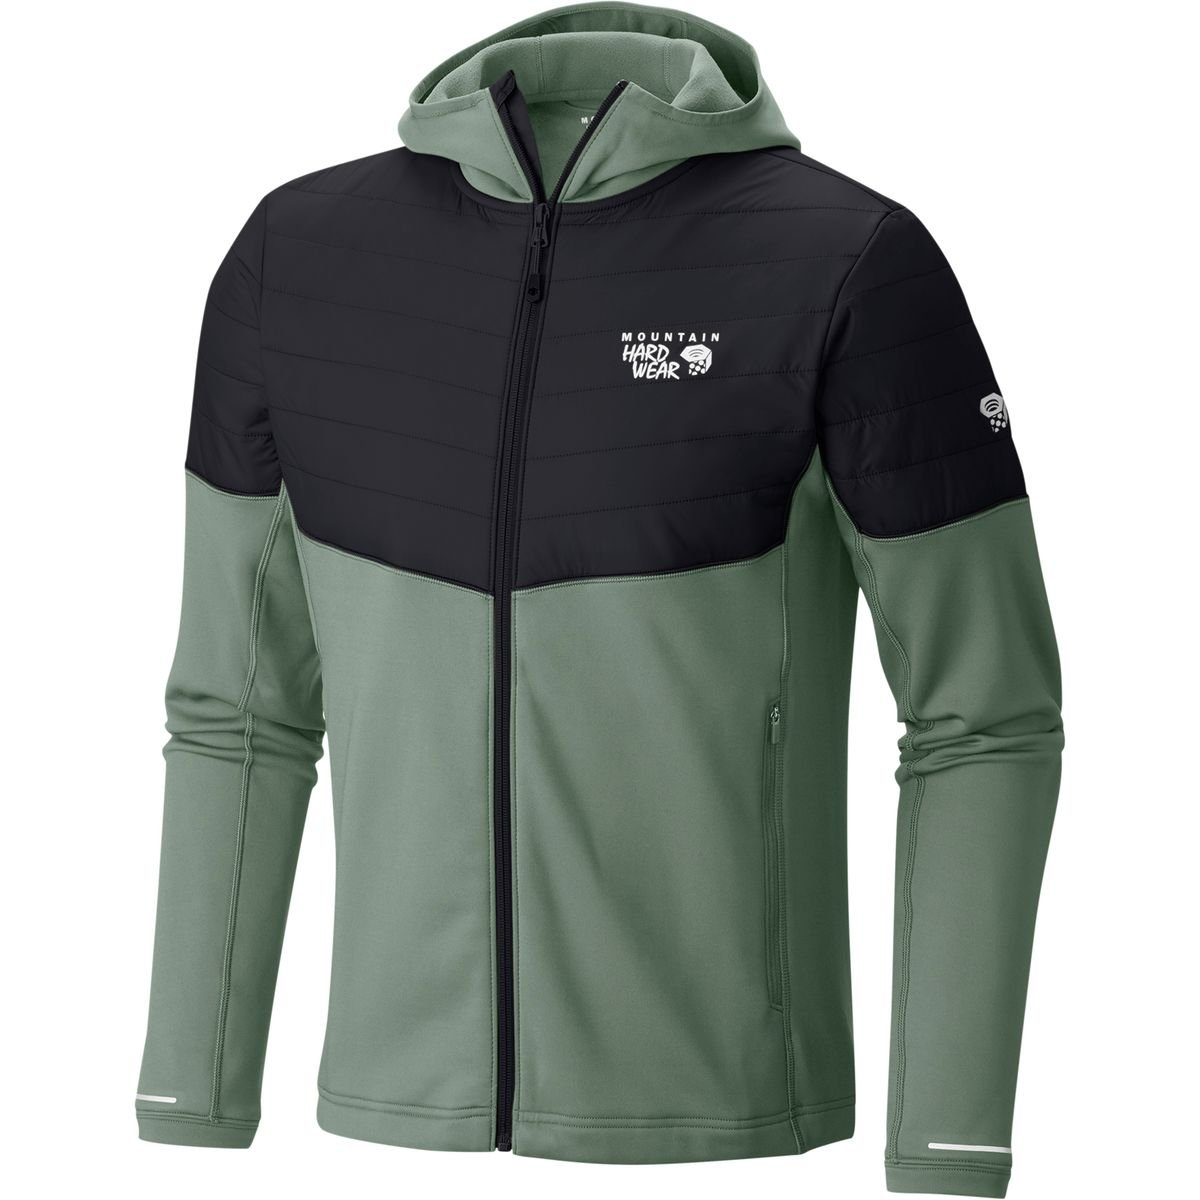 TALLA XL. Mountain Hardwear 32 Insulated Hooded, Chaqueta con Capucha para Hombre